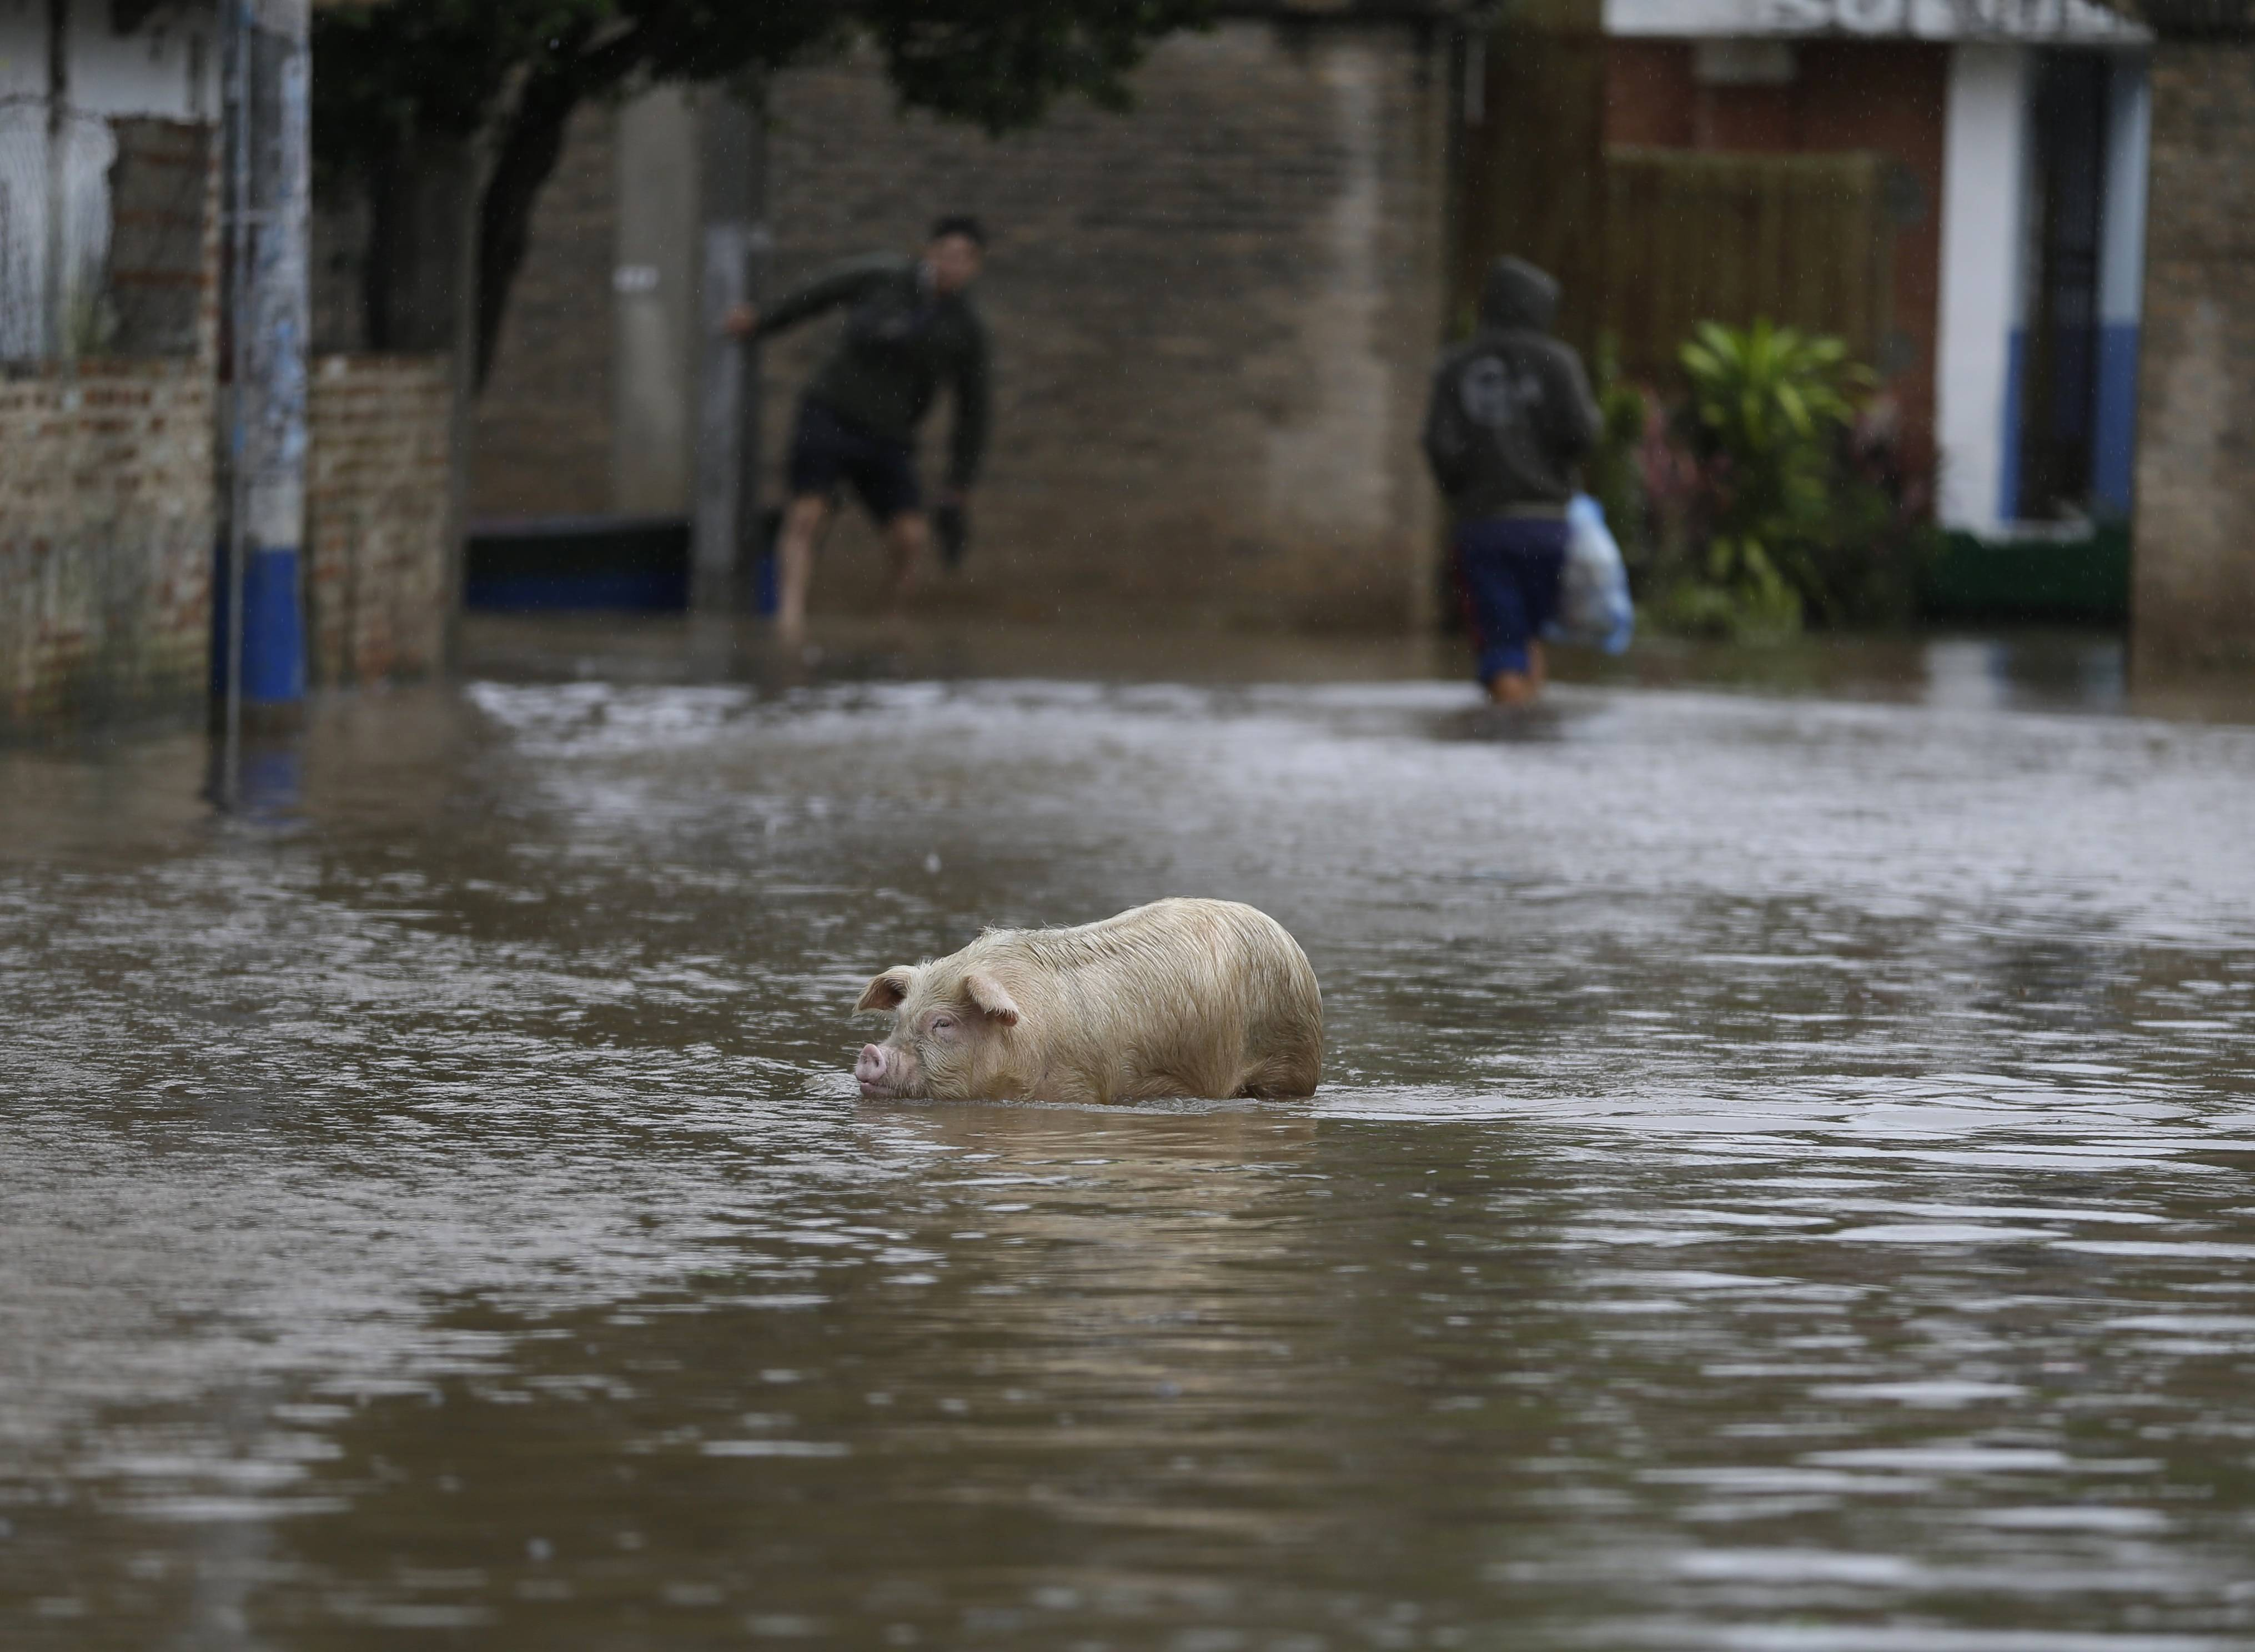 A pig walks through a flooded street Frifday in Paraguay.